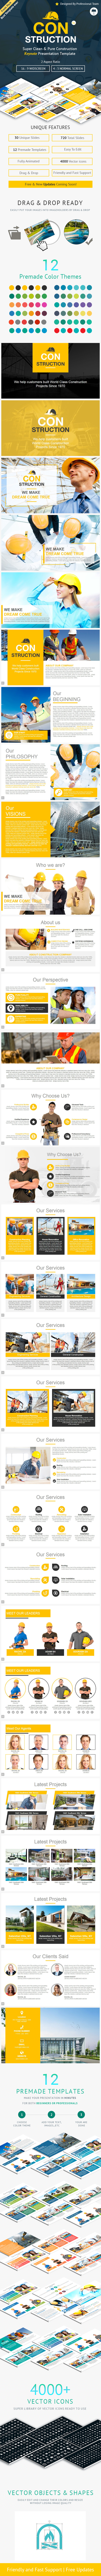 Construction Keynote Presentation Template - Business Keynote Templates